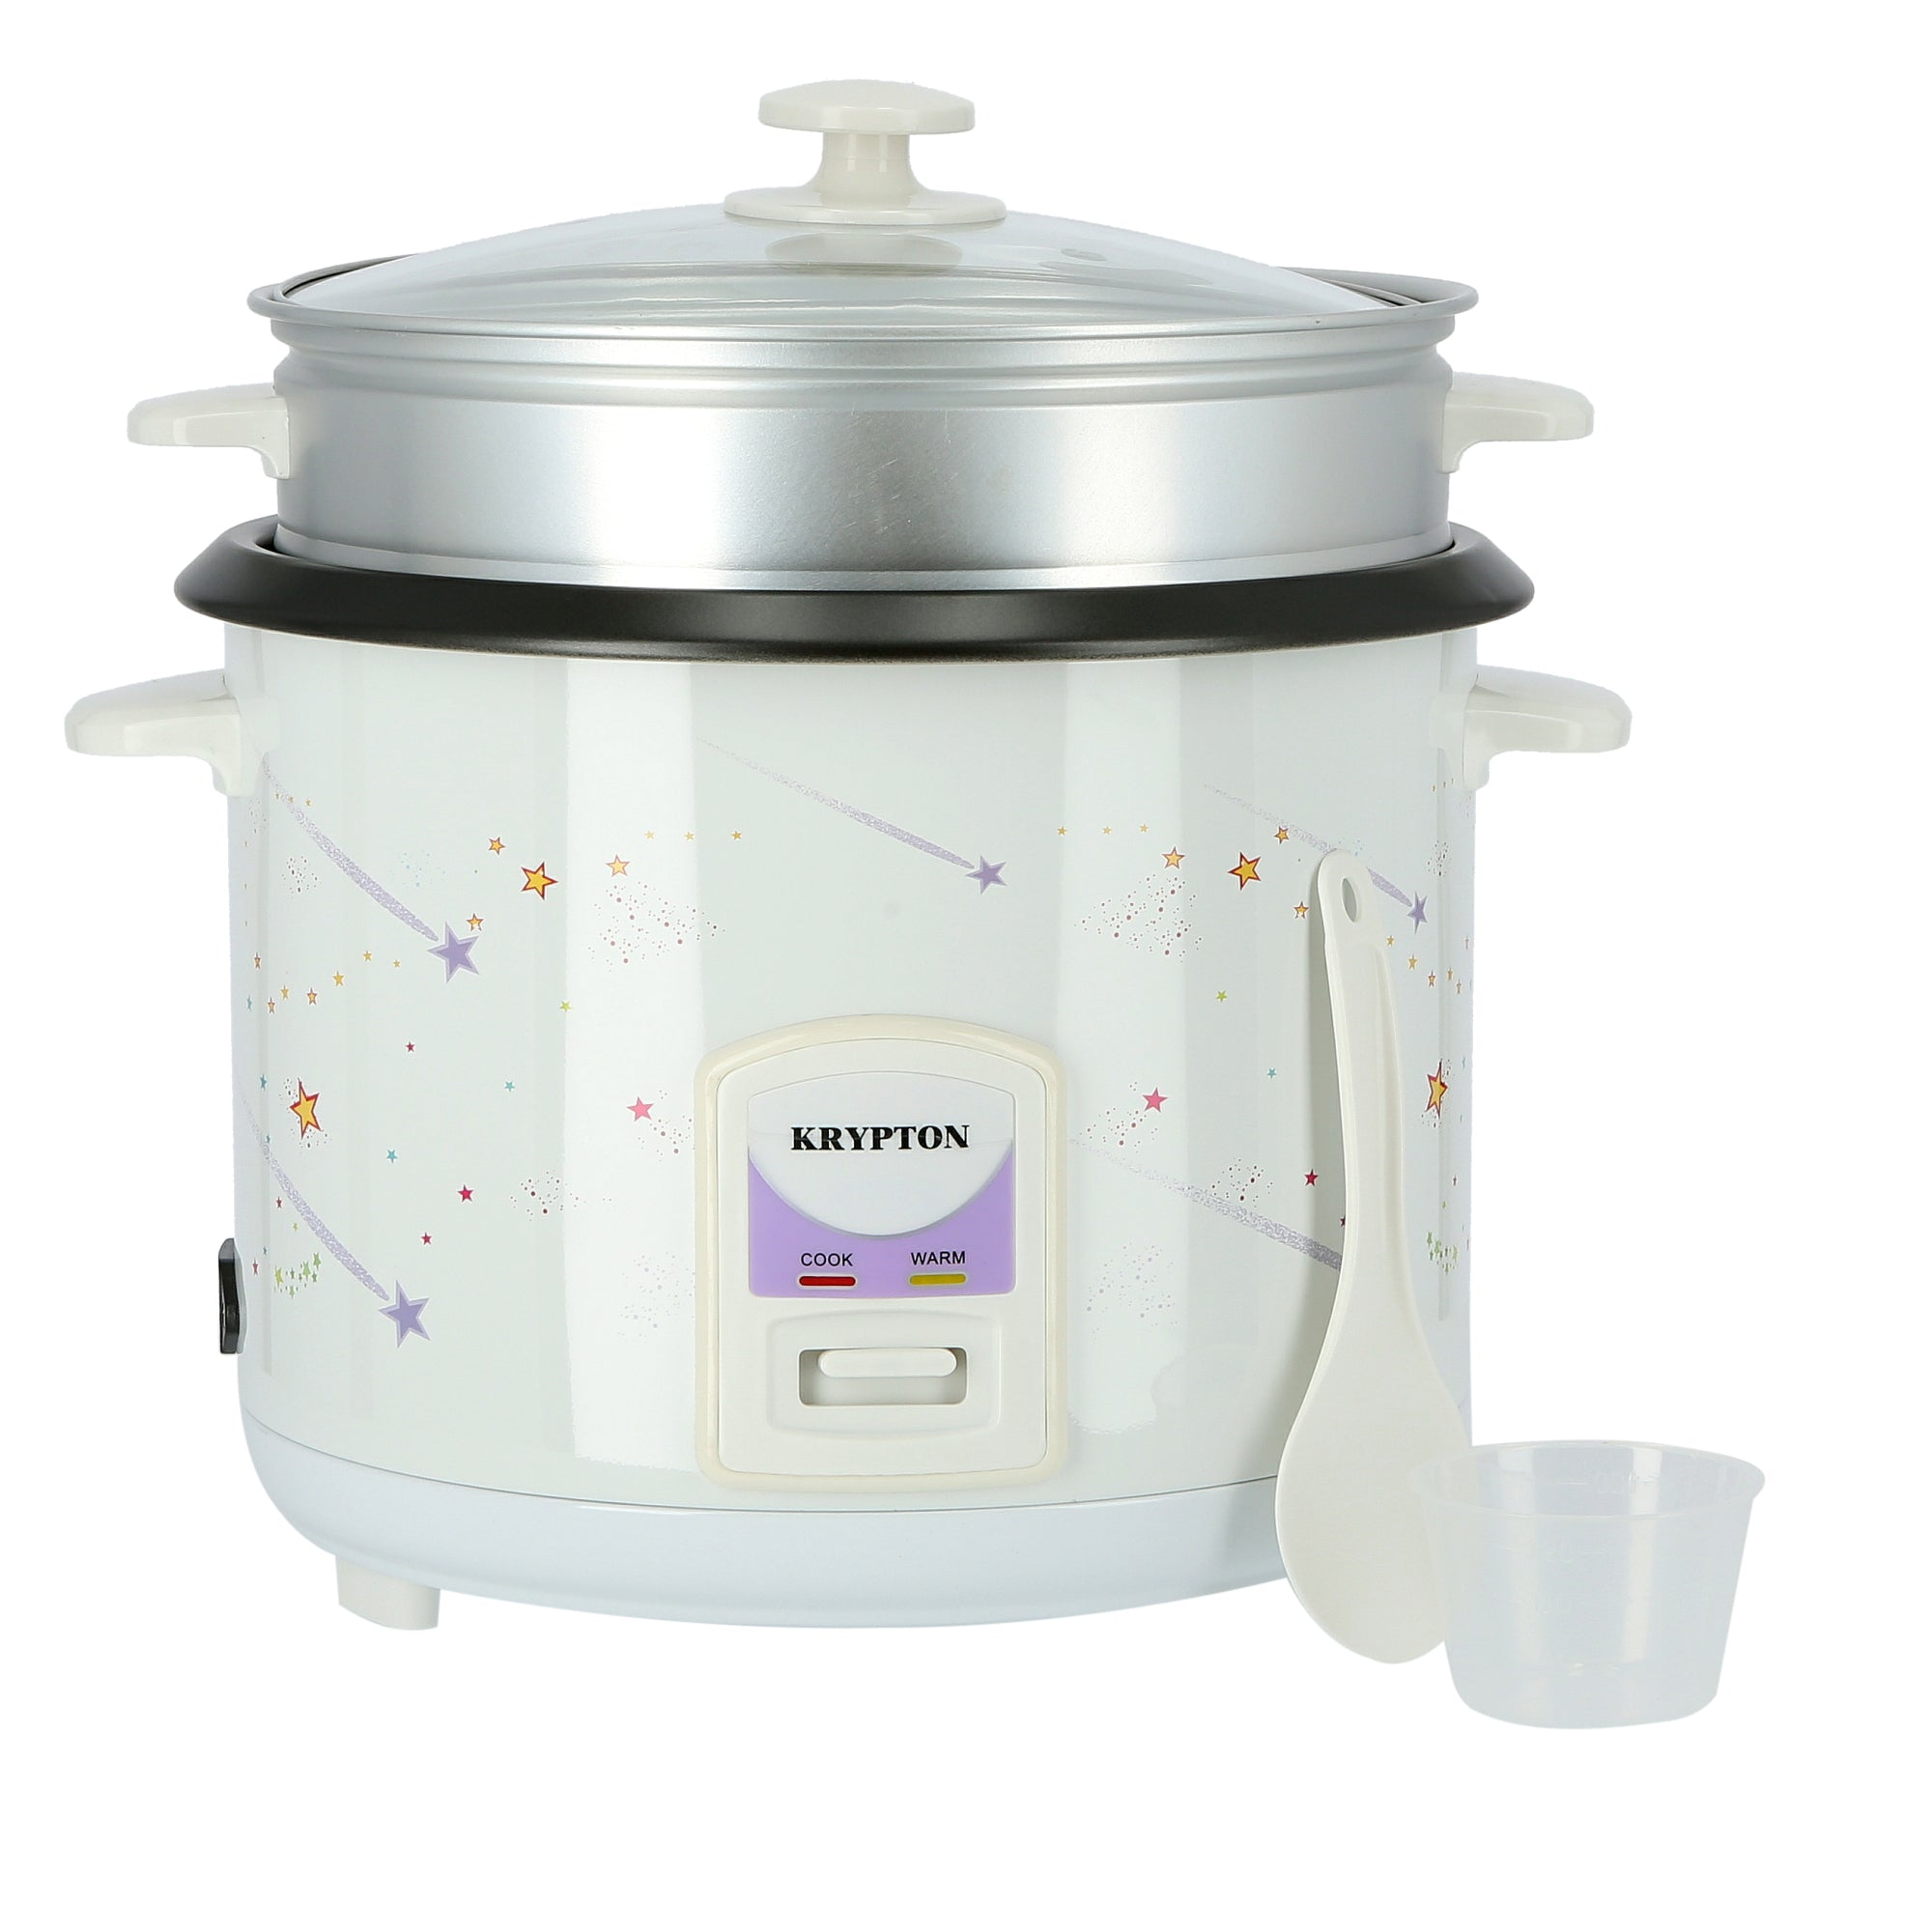 1000W 2.8L Rice Cooker with Steamer | Non-Stick Inner Pot, Automatic Cooking, Easy Cleaning, High-Temperature Protection - Make Rice & Steam Healthy Food & Vegetables - 2 Year Warranty